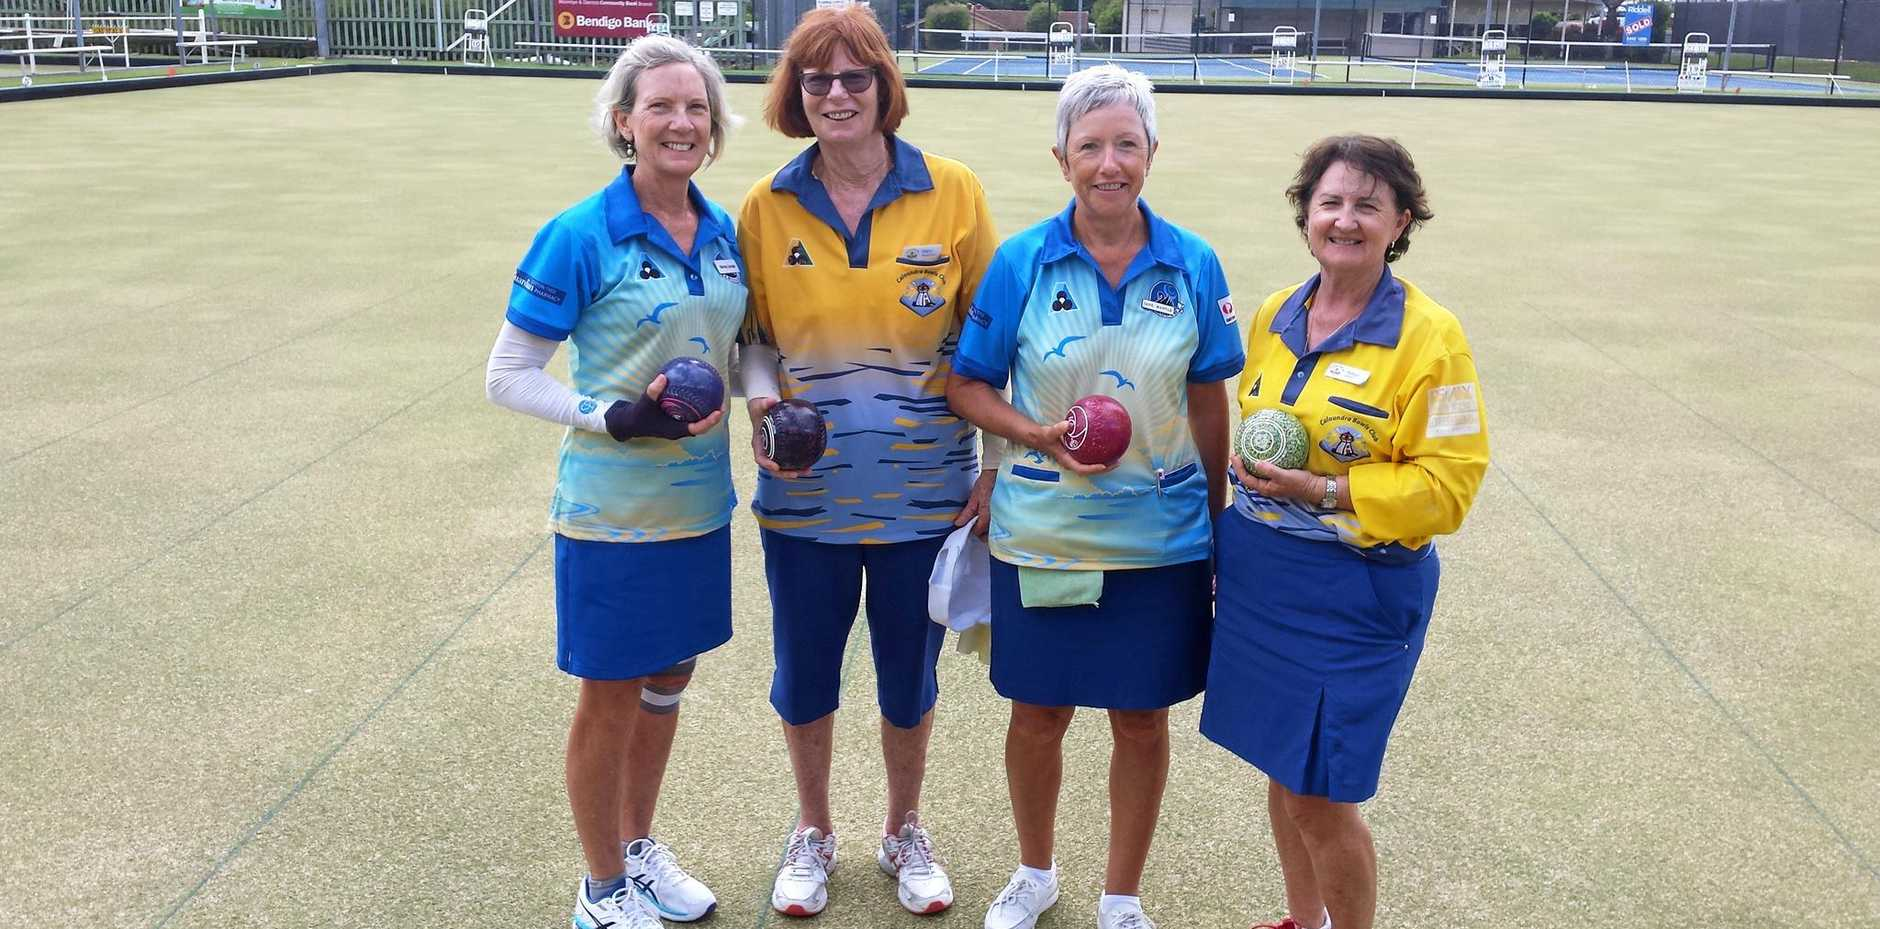 HAPPY BOWLERS: Shirley, Mary, Jane and Robyn at Woombye Bowls Club for the Sunshine Coast Bowls Championships.